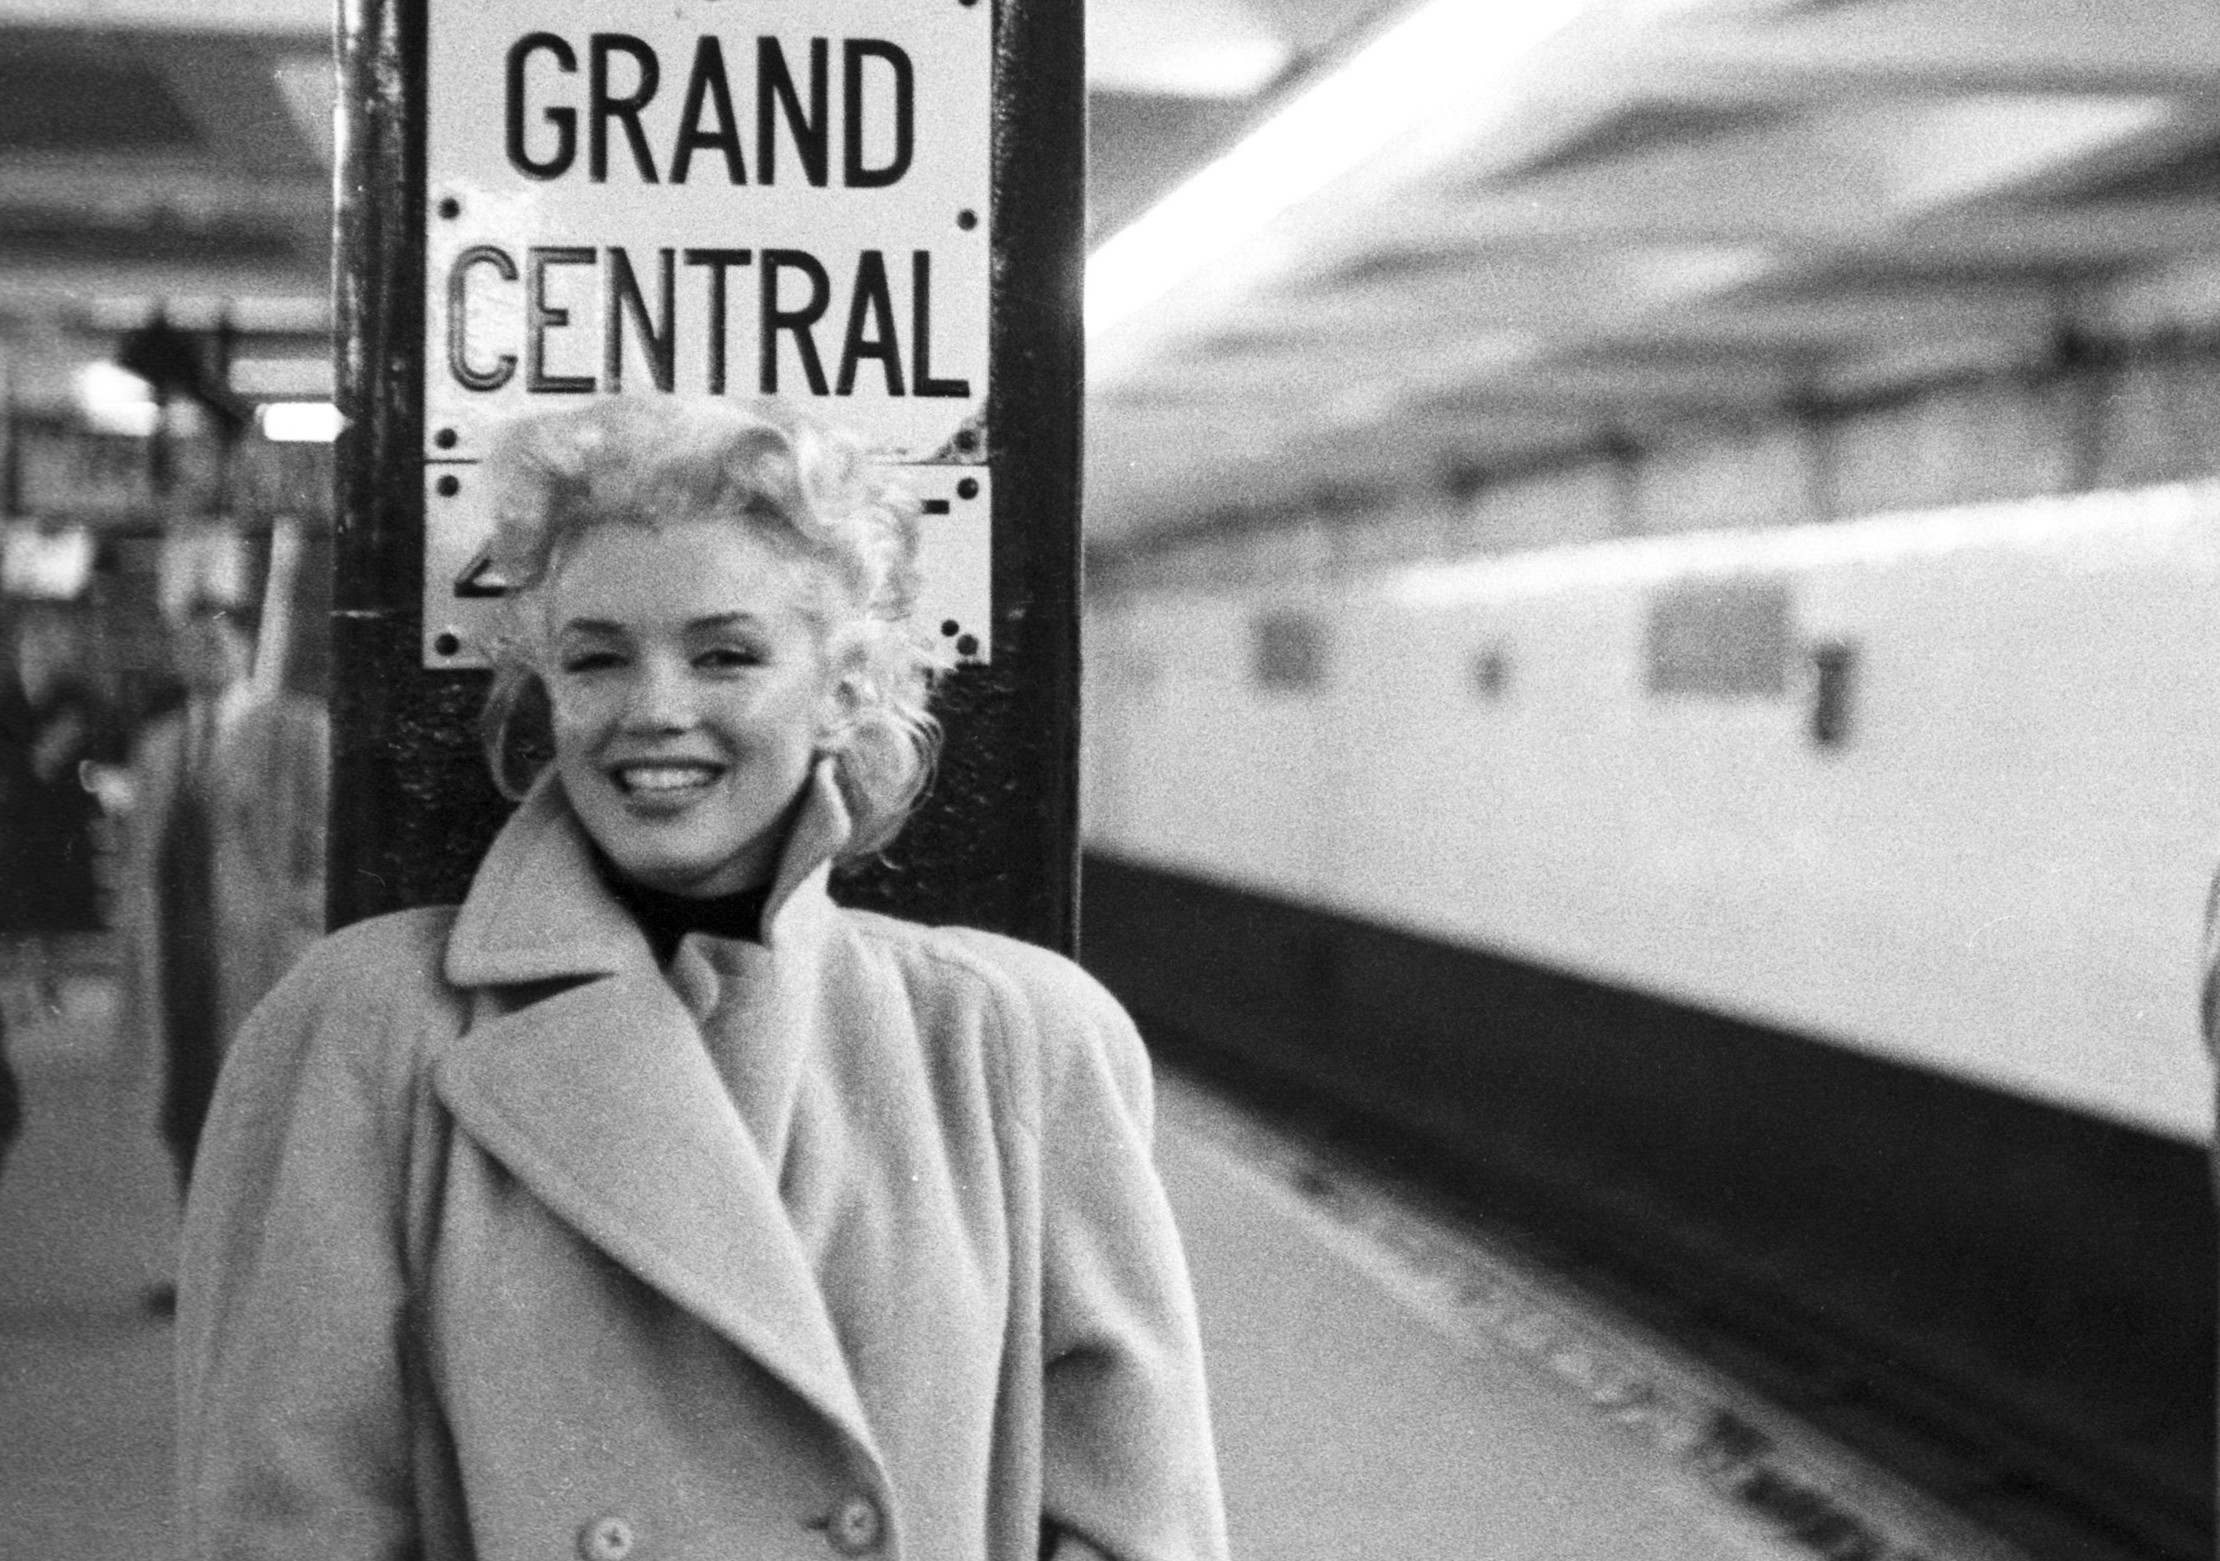 the incredible life of marilyn monroe Life of fame marilyn monroe the incredible life of marilyn monroe although this statement didn't come true, marilyn monroe had a memorable life filled.